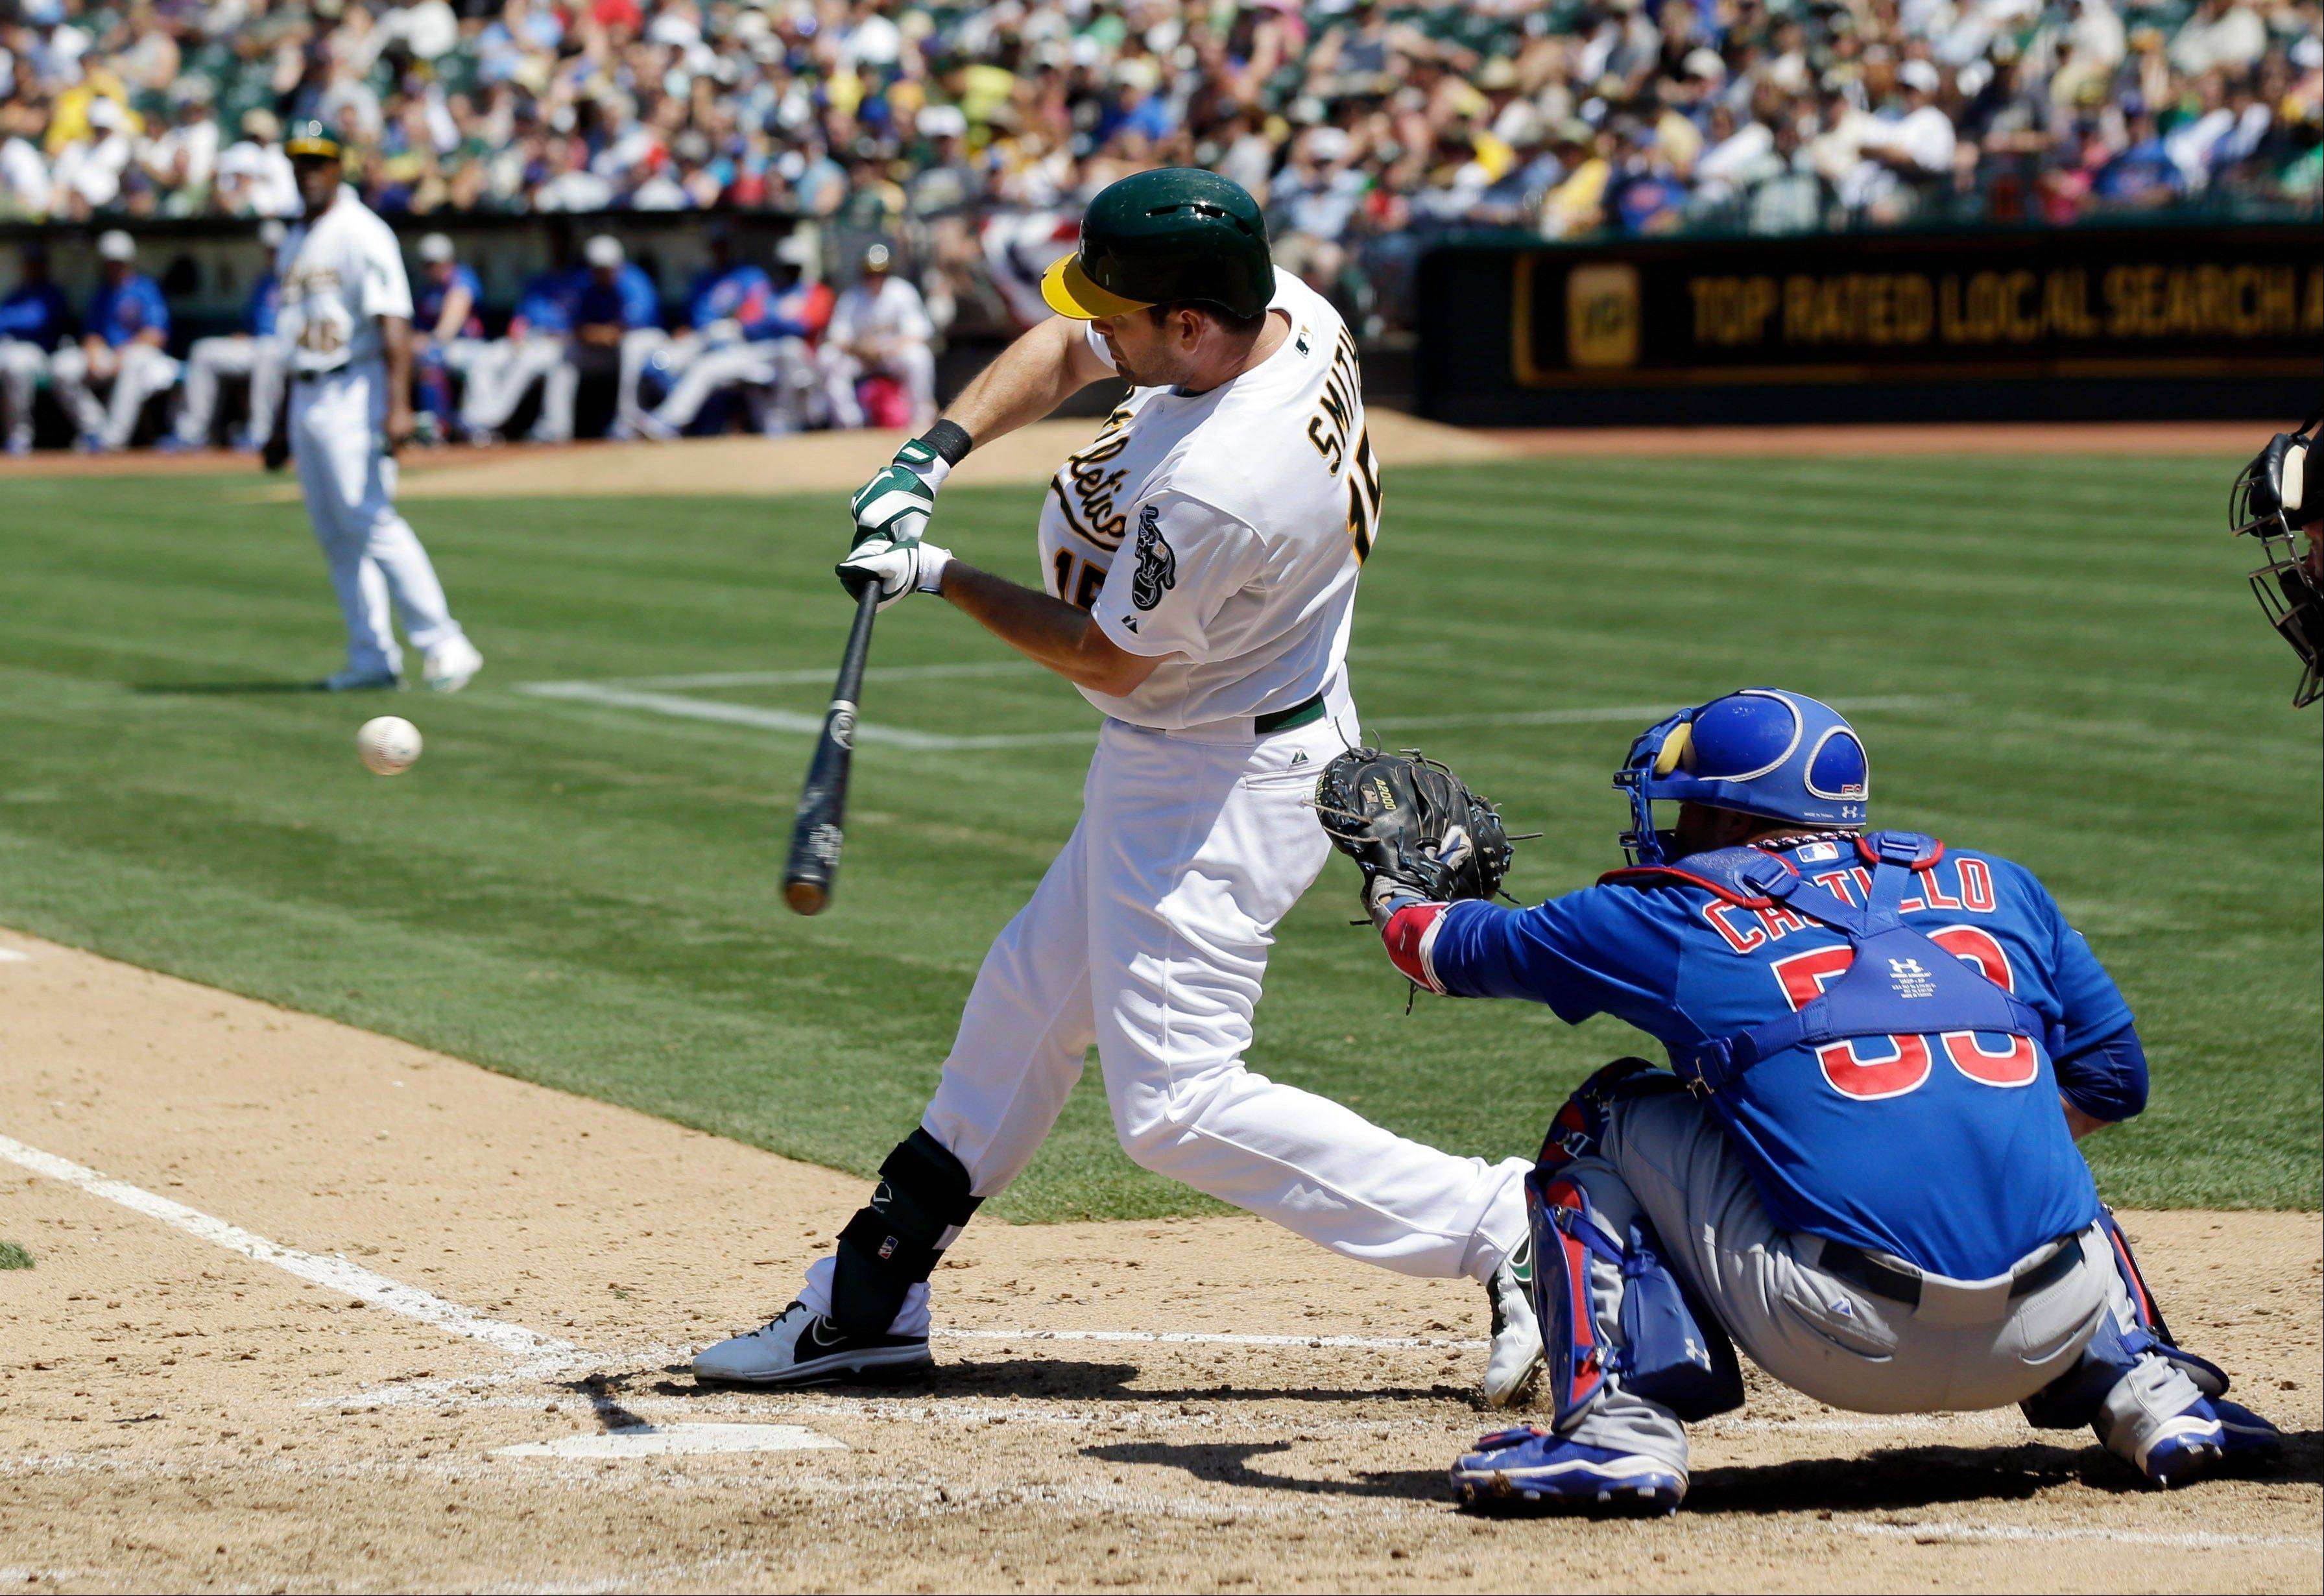 Oakland Athletics' Seth Smith singles against the Cubs during the seventh inning of a baseball game Thursday, July 4, 2013 in Oakland, Calif.